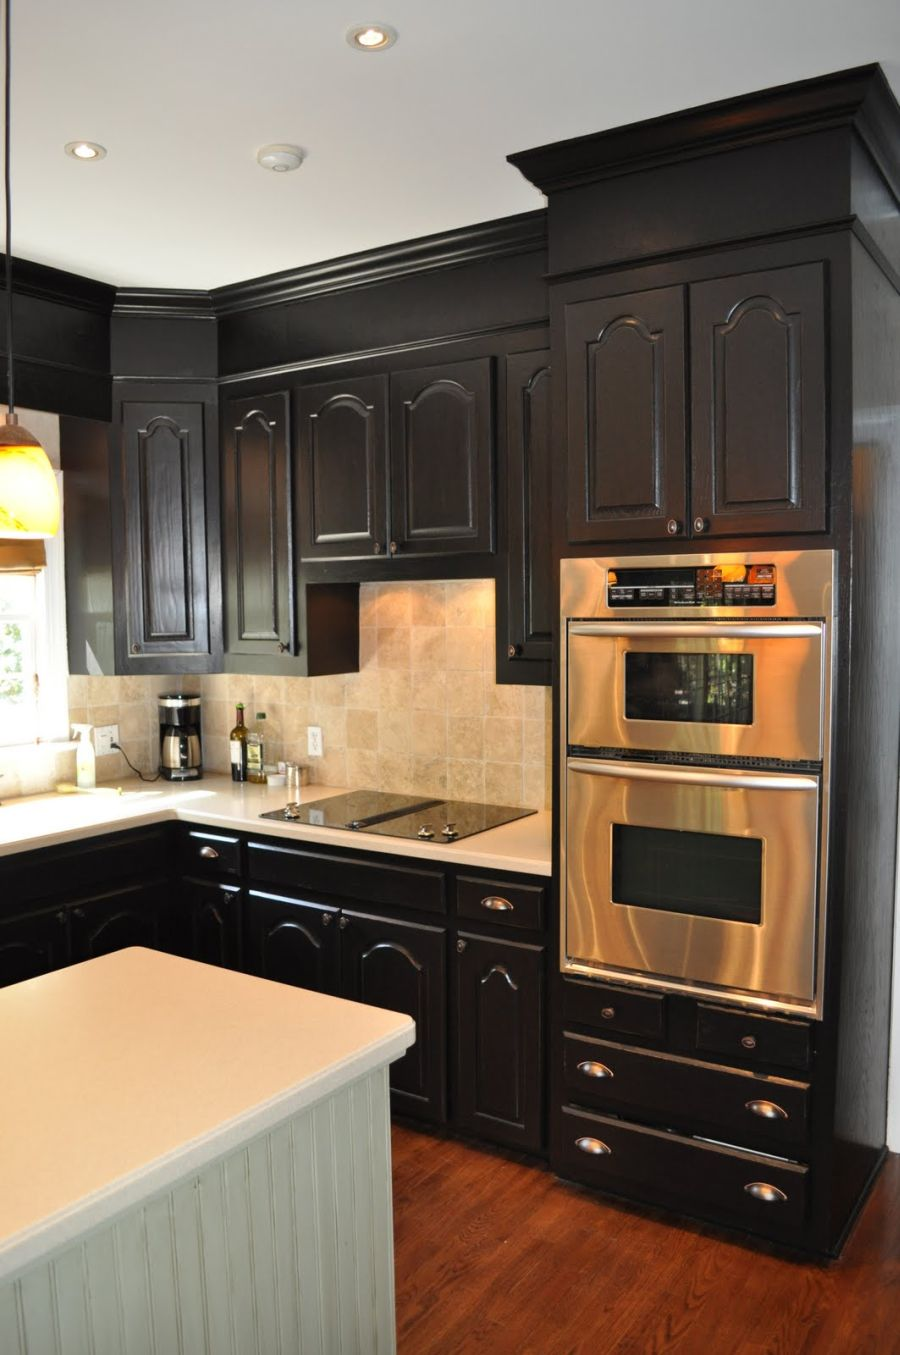 Best Kitchen Gallery: One Color Fits Most Black Kitchen Cabi S of Kitchen With Black Cabinets on rachelxblog.com